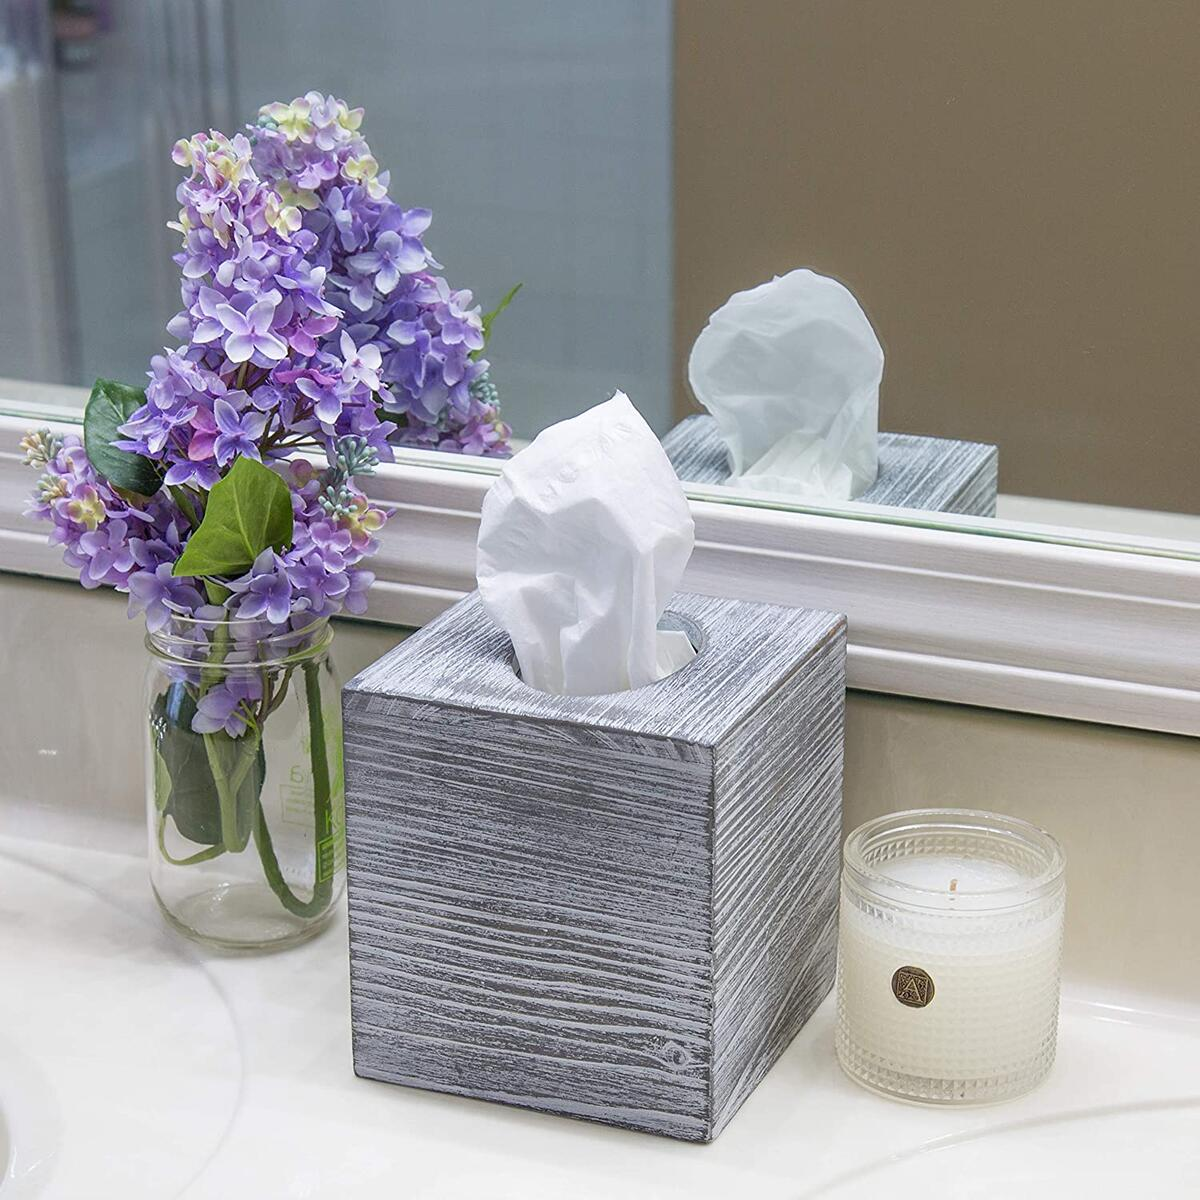 Daisy's House Square Tissue Box Cover for Rustic Home Decor – Wooden Tissue Holder Made of Reclaimed Barnwood with Distressed Gray Wash – Slips Over Cube Facial Tissue Box